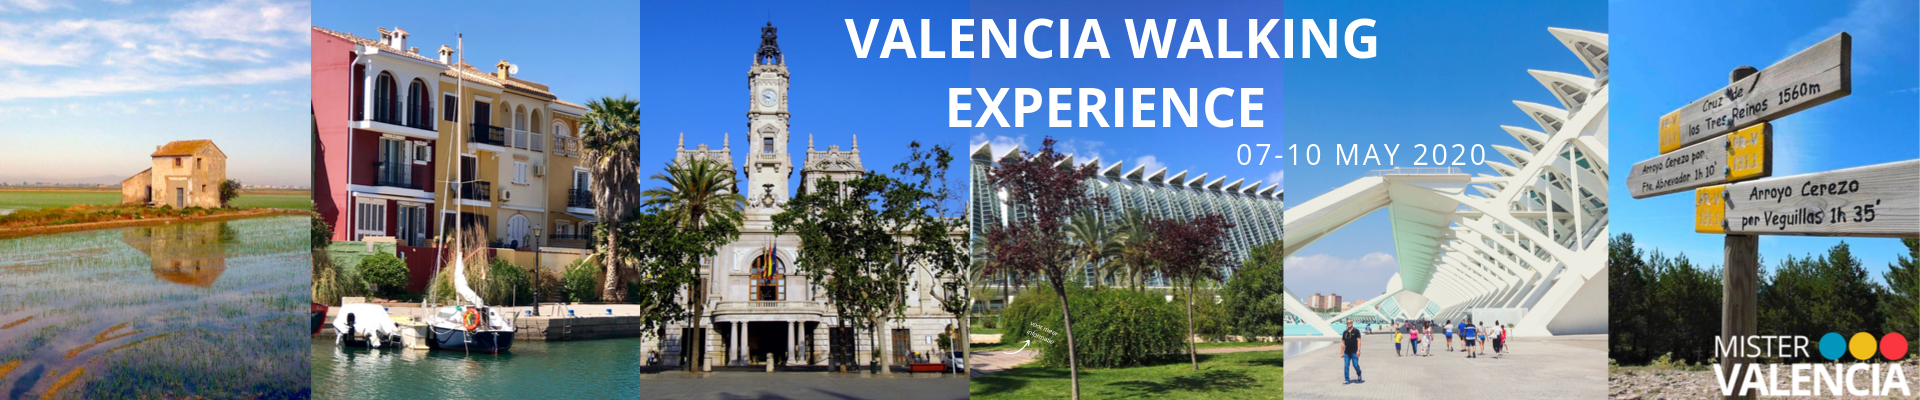 Valencia Walking Experience